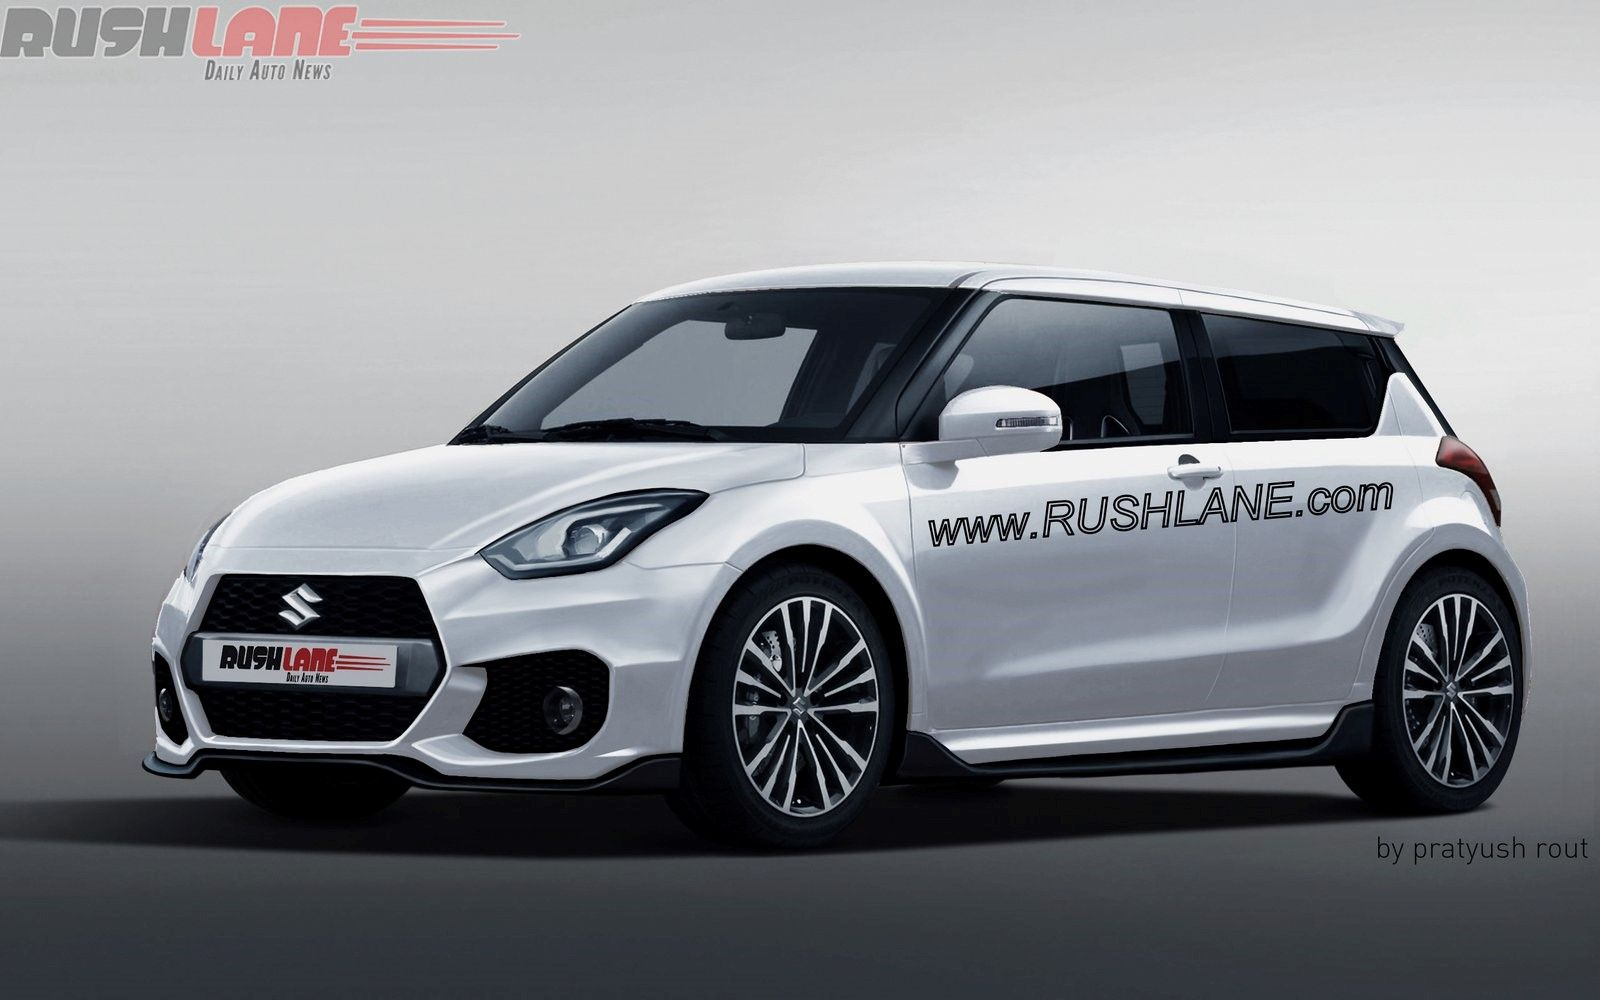 2017 Suzuki Swift Sport Front Three Quarter Rendering 1600x1000